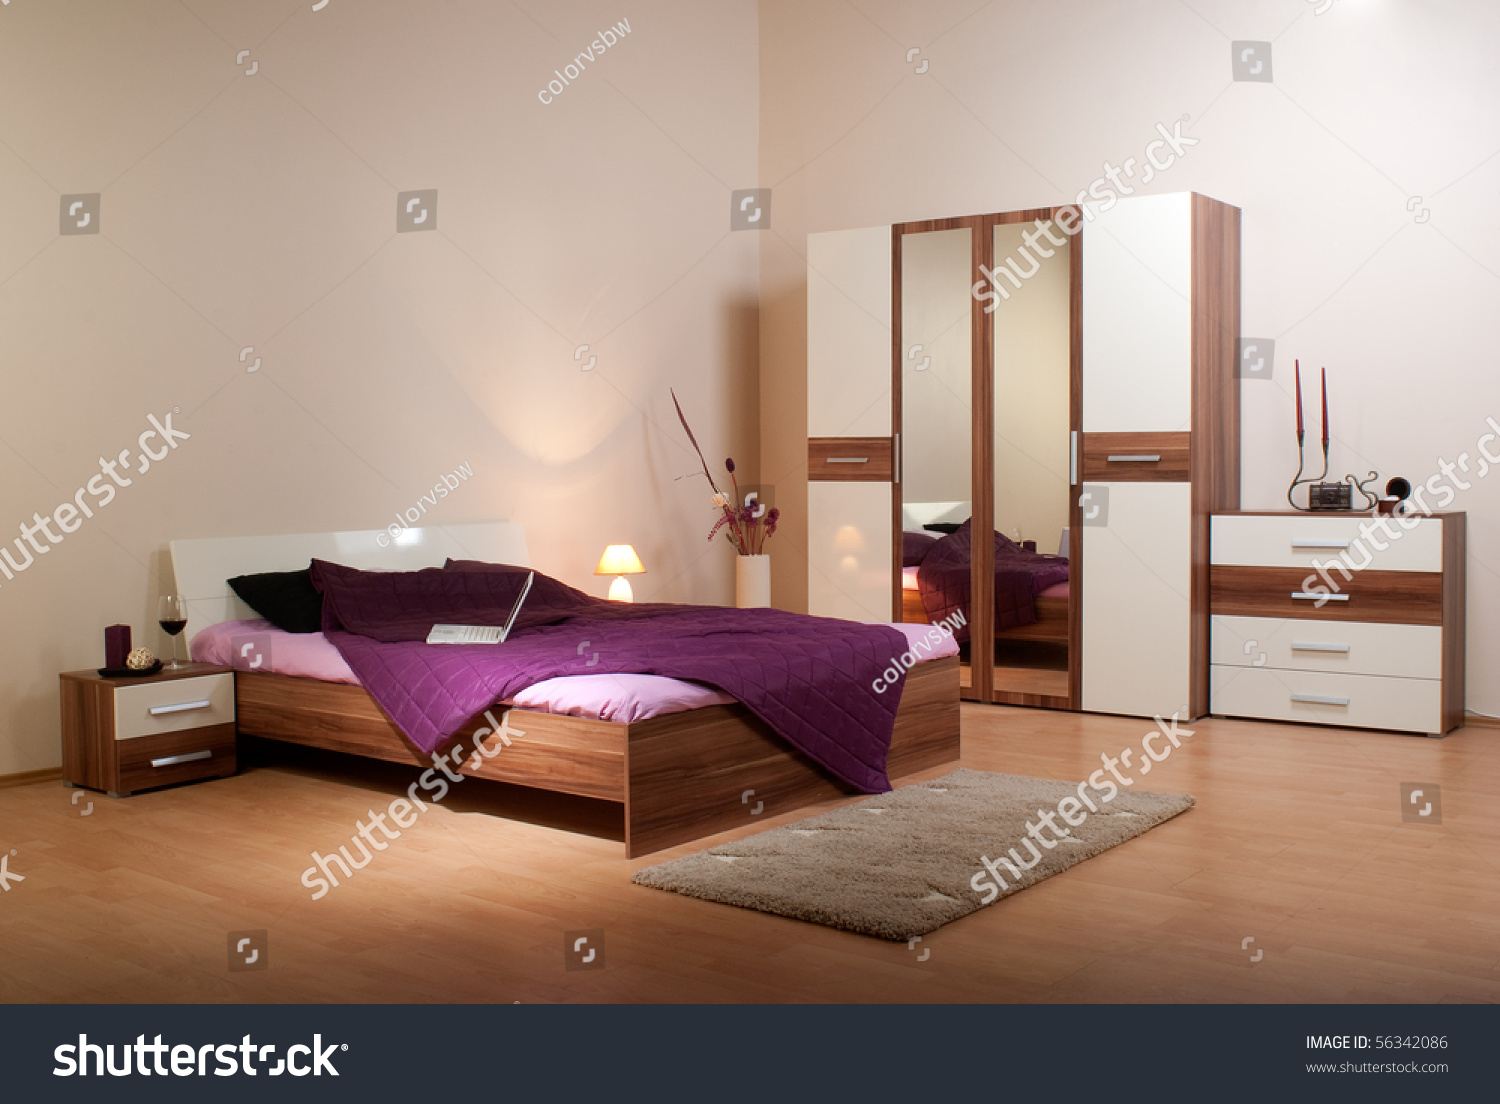 bedroom interior showcase including bed wardrobe bedside table commodes linen press - Bedroom Showcase Designs